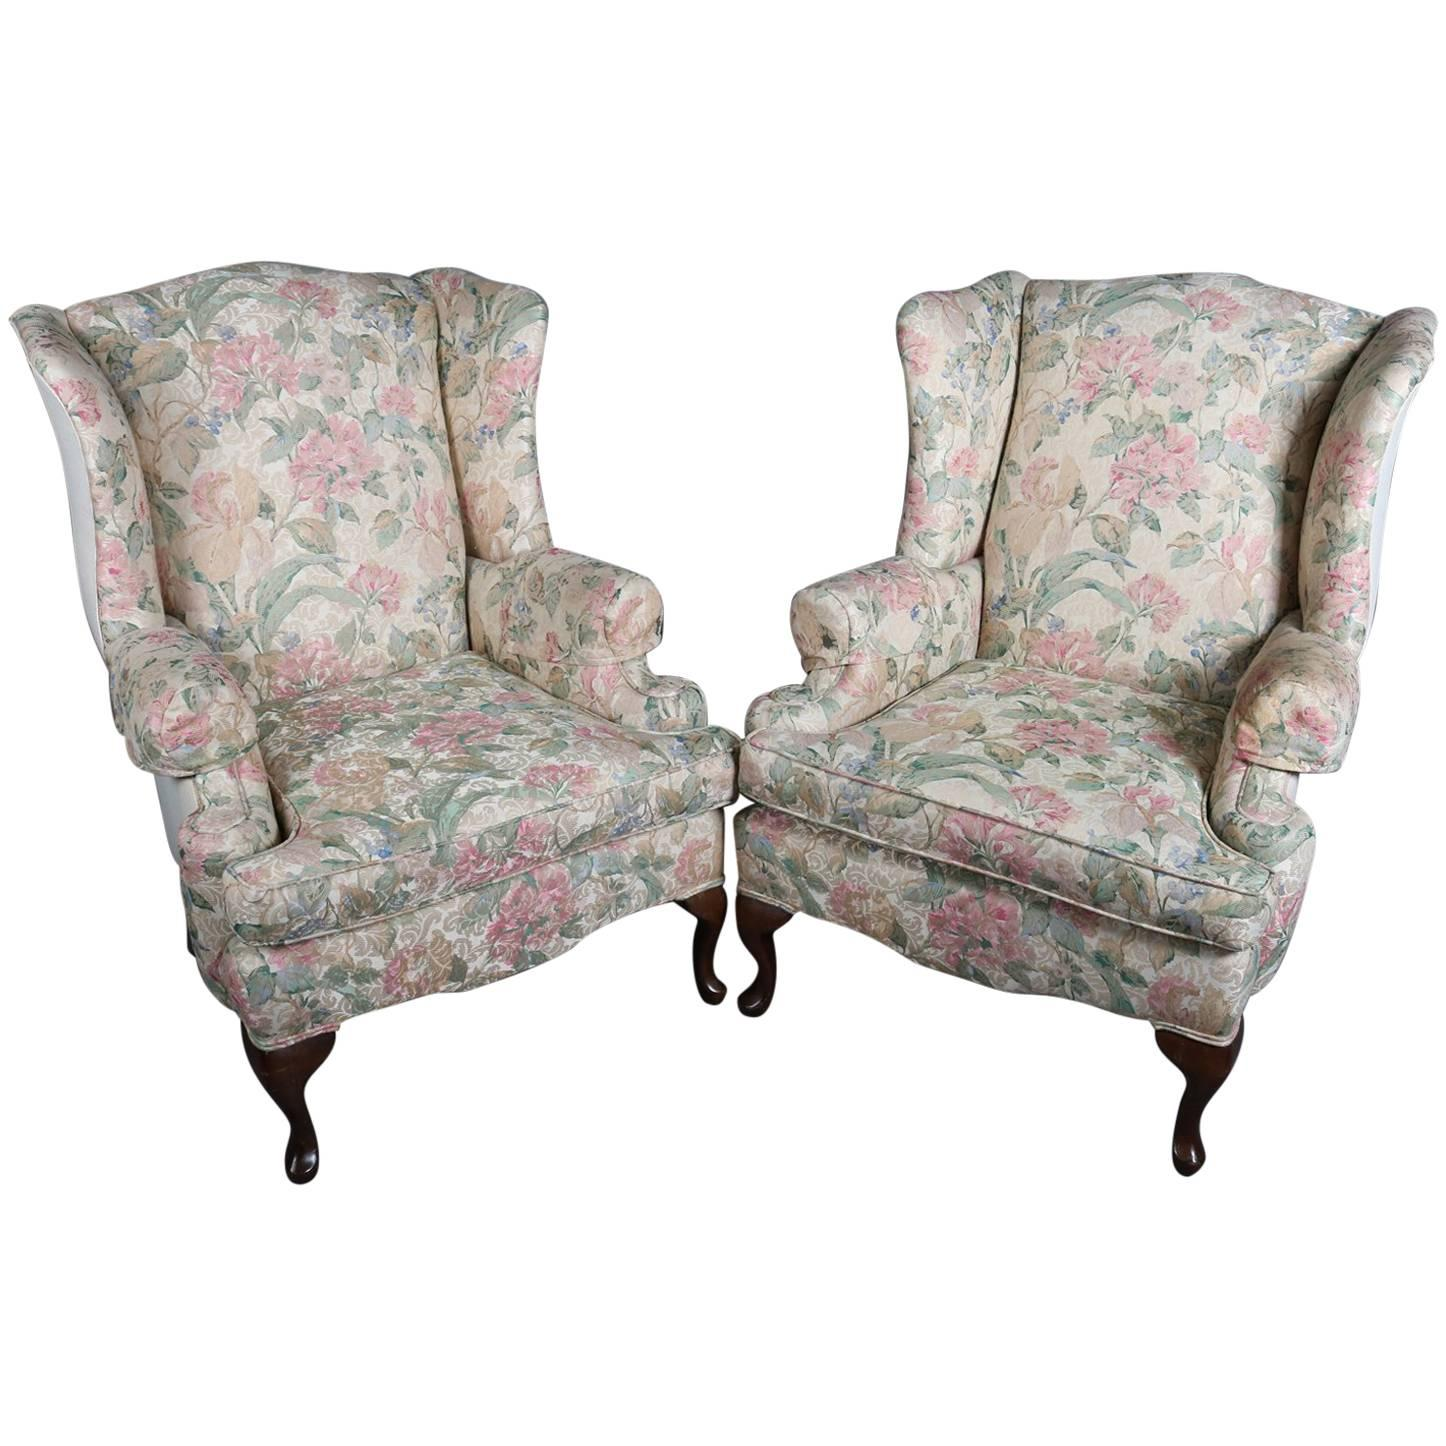 Pair Of Queen Anne Style Floral Upholstered Wingback Chairs, 20th Century  For Sale